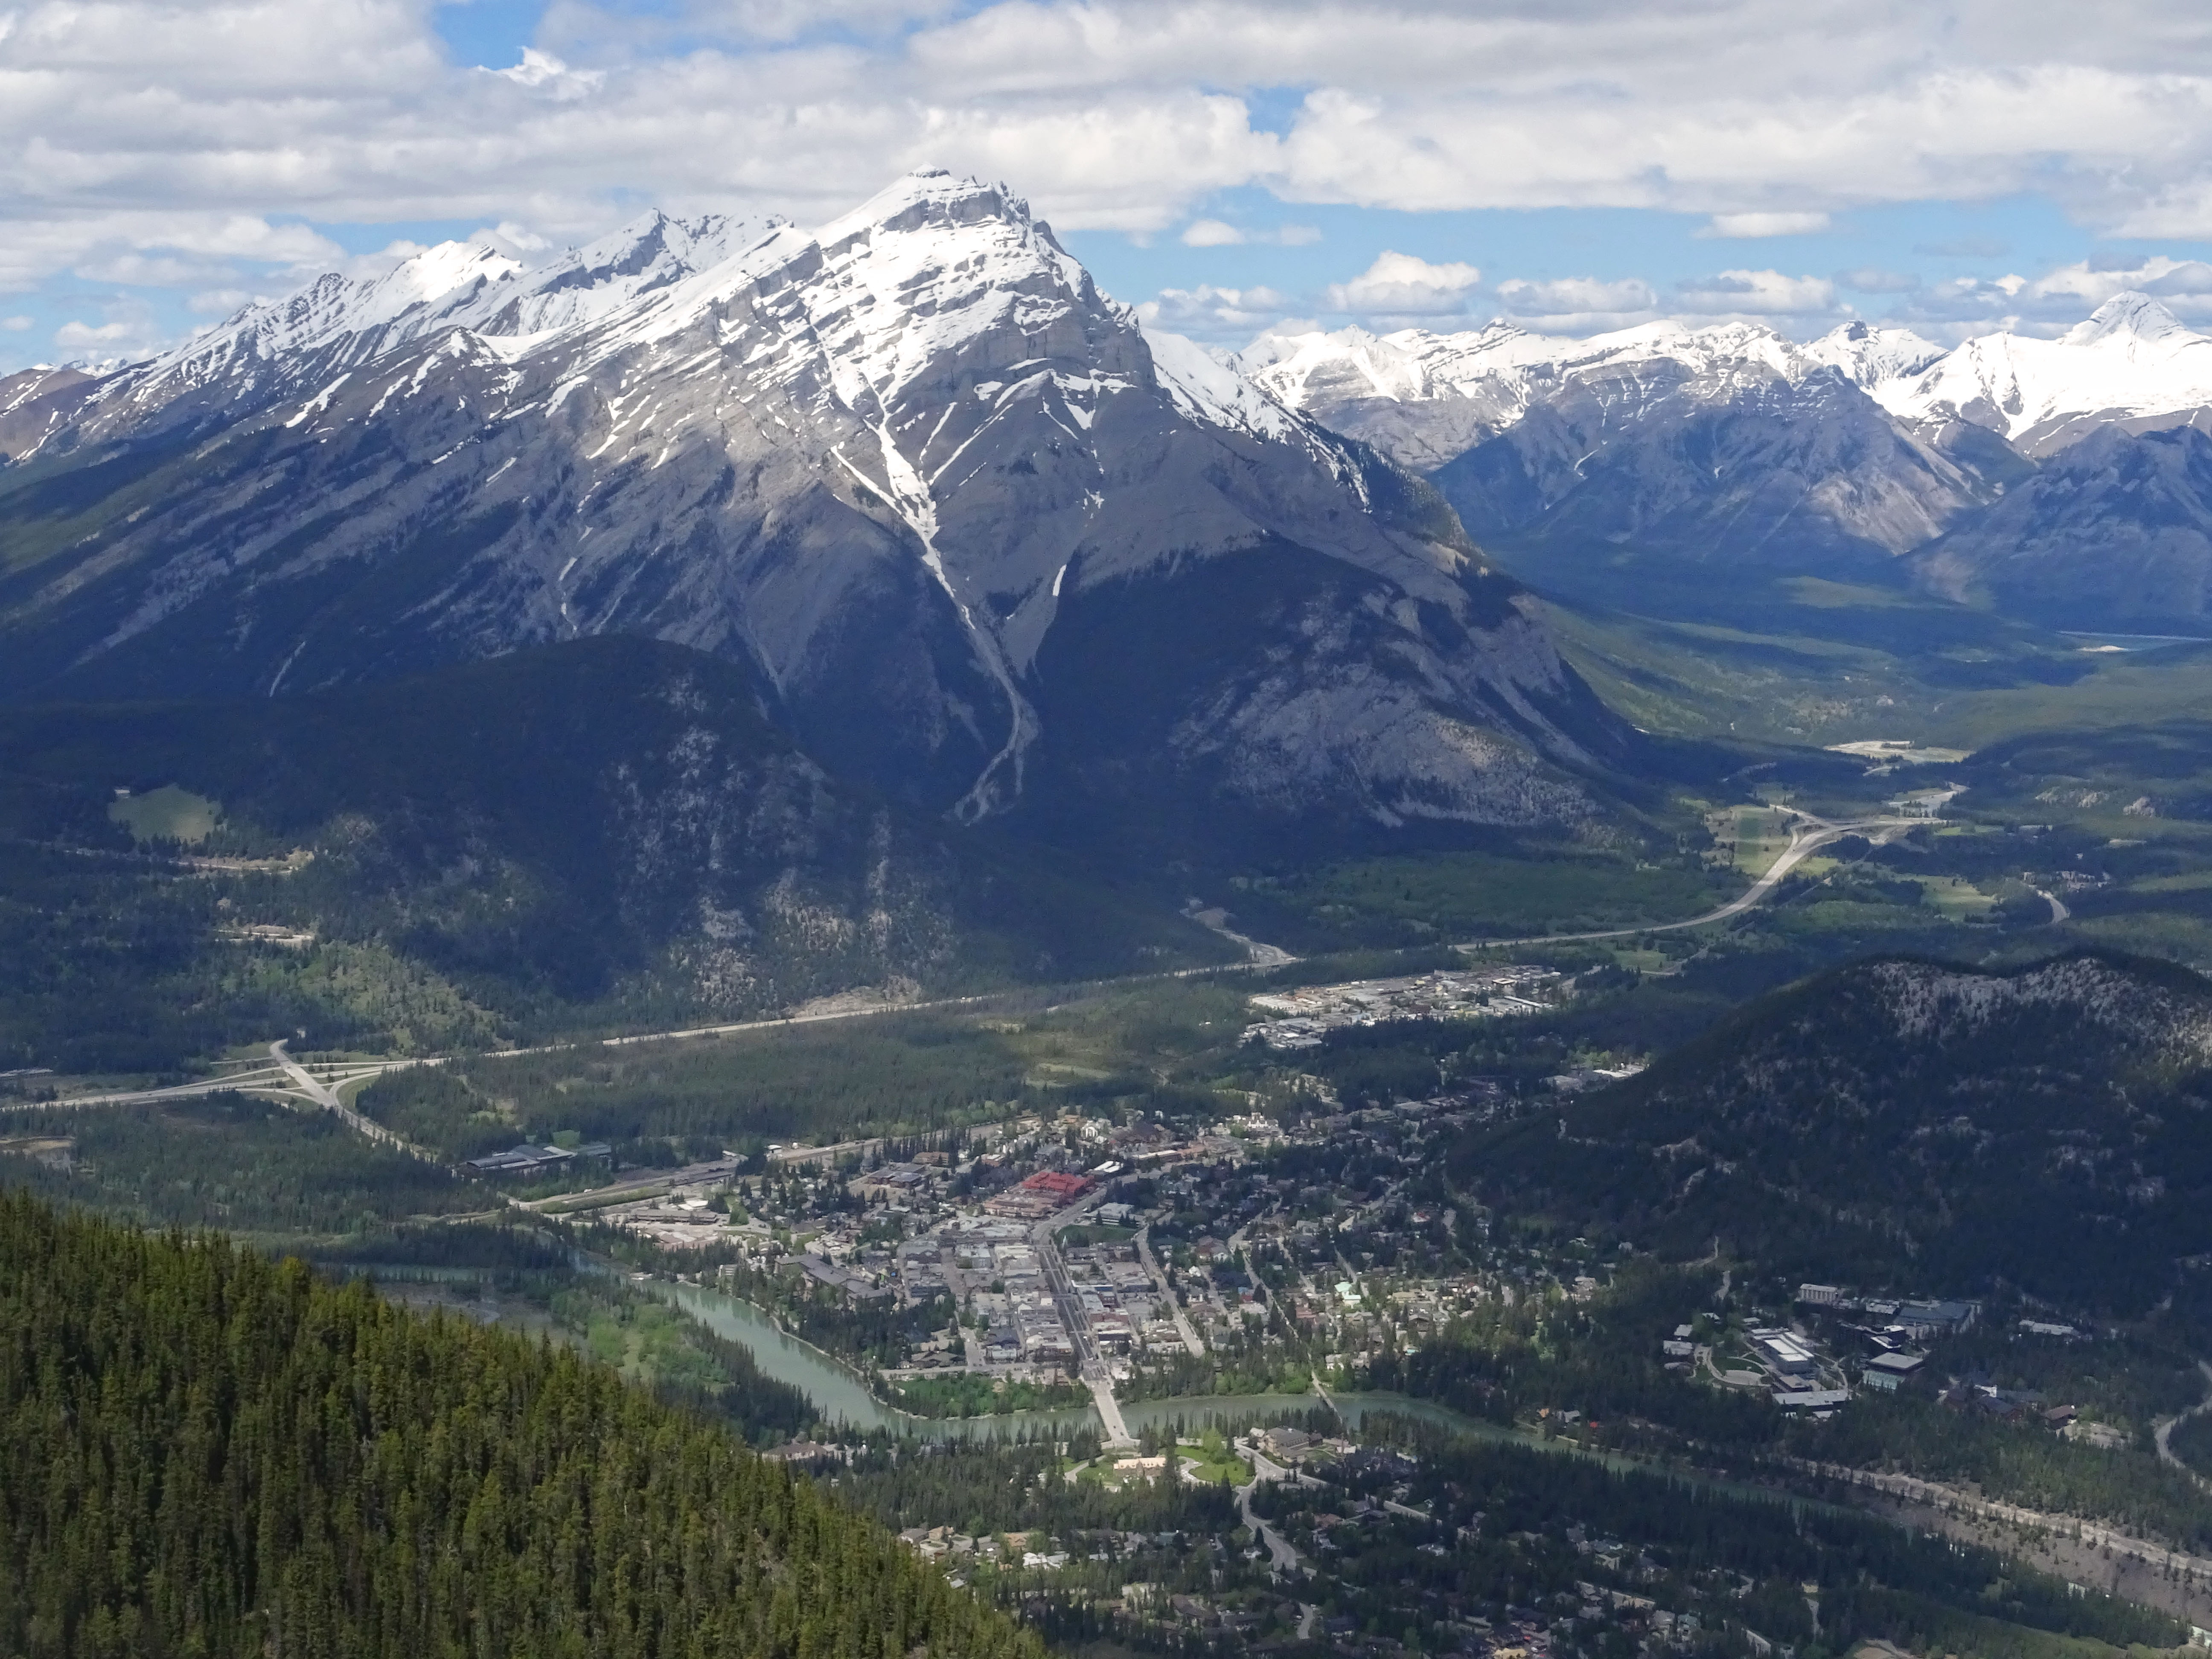 Sulfur Mountain Gondola, Parc national de Banff, Alberta, Canada